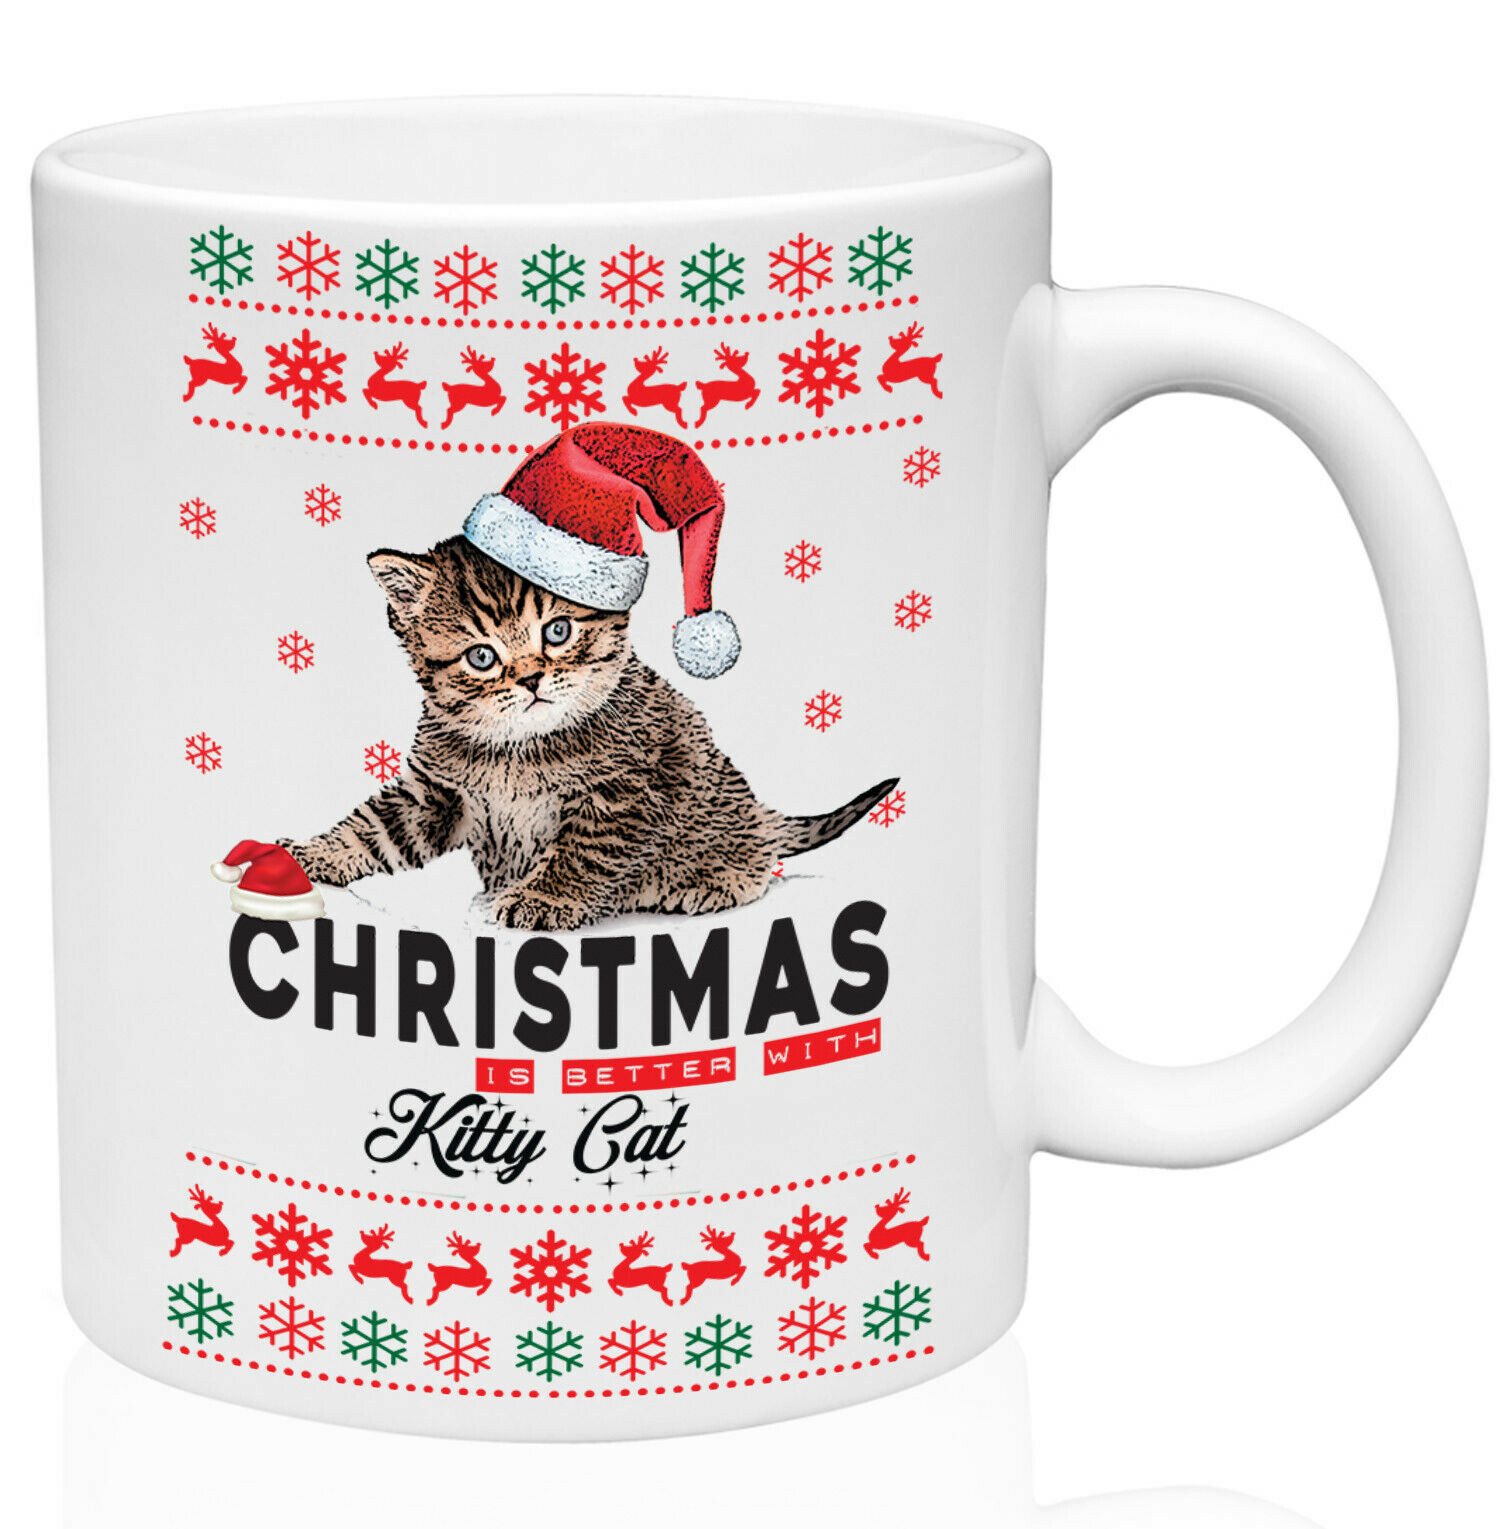 Kitty Cat Christmas Better With Kitty Cat 11oz Ceramic High Quality Coffee Mug - $15.93